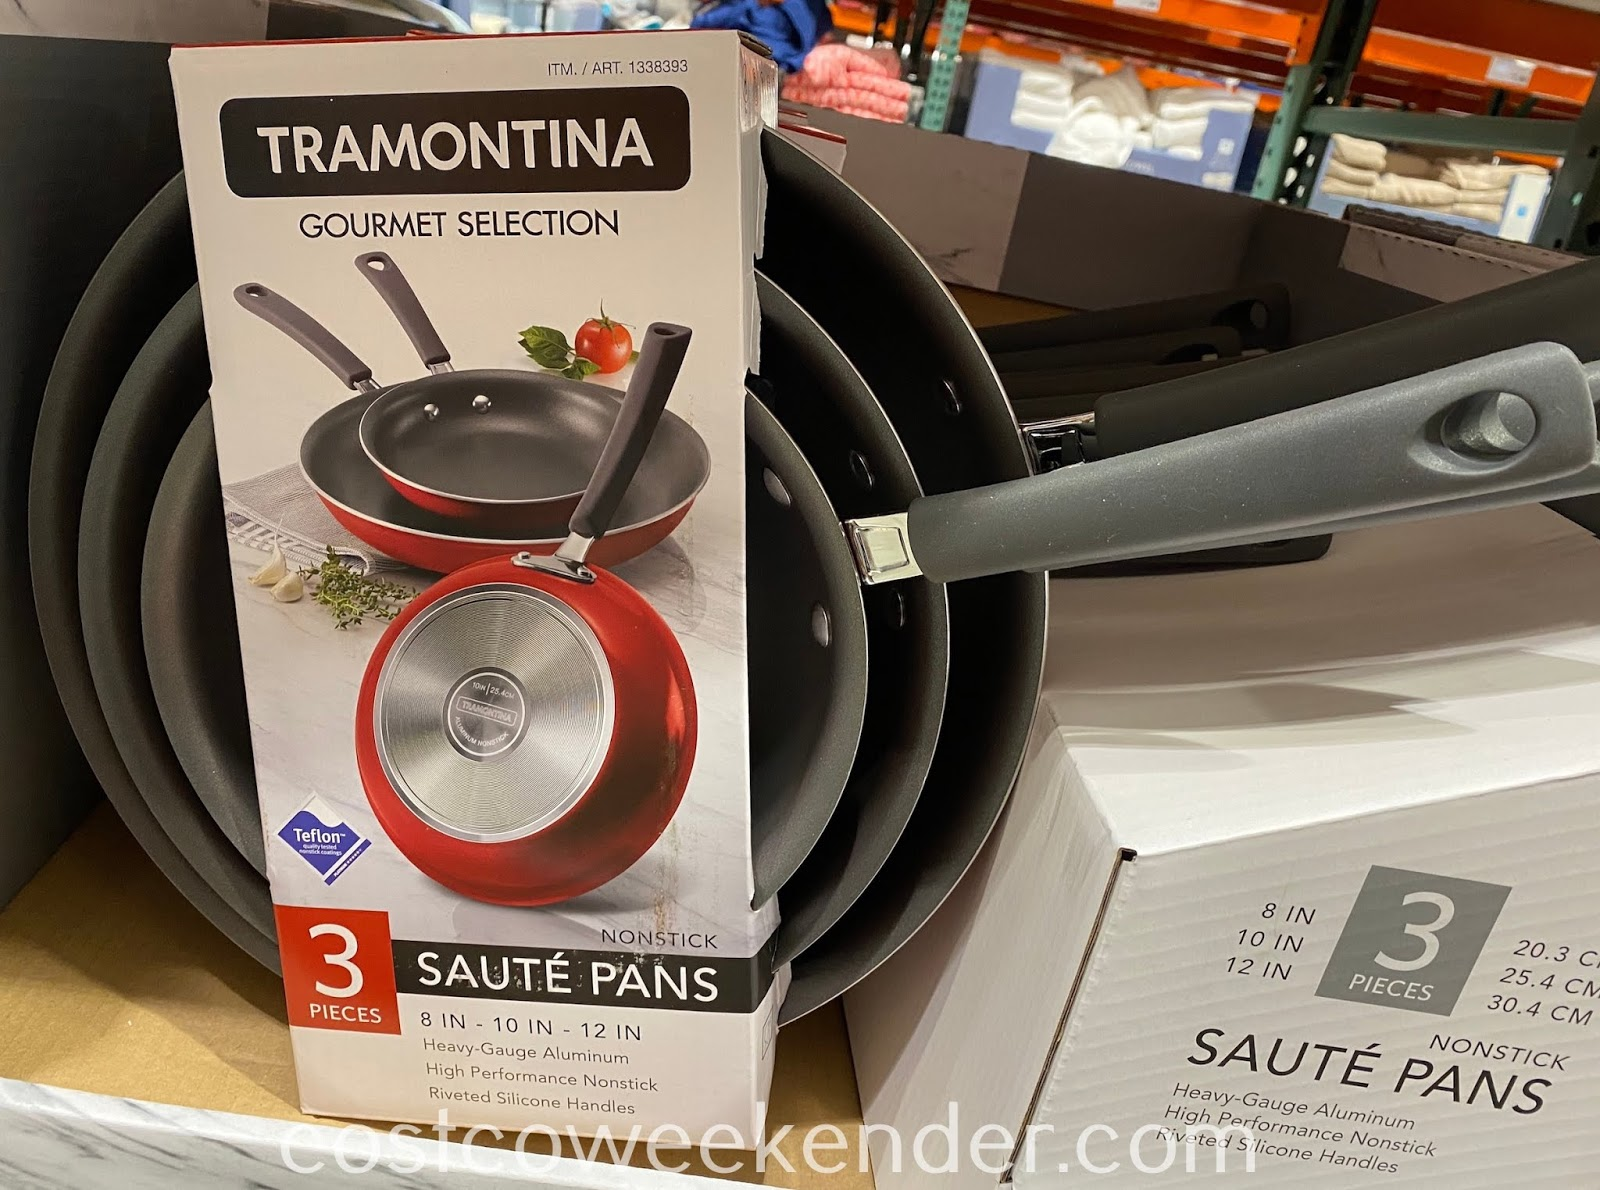 Cook a delicious meal using Tramontina Nonstick Saute Pans